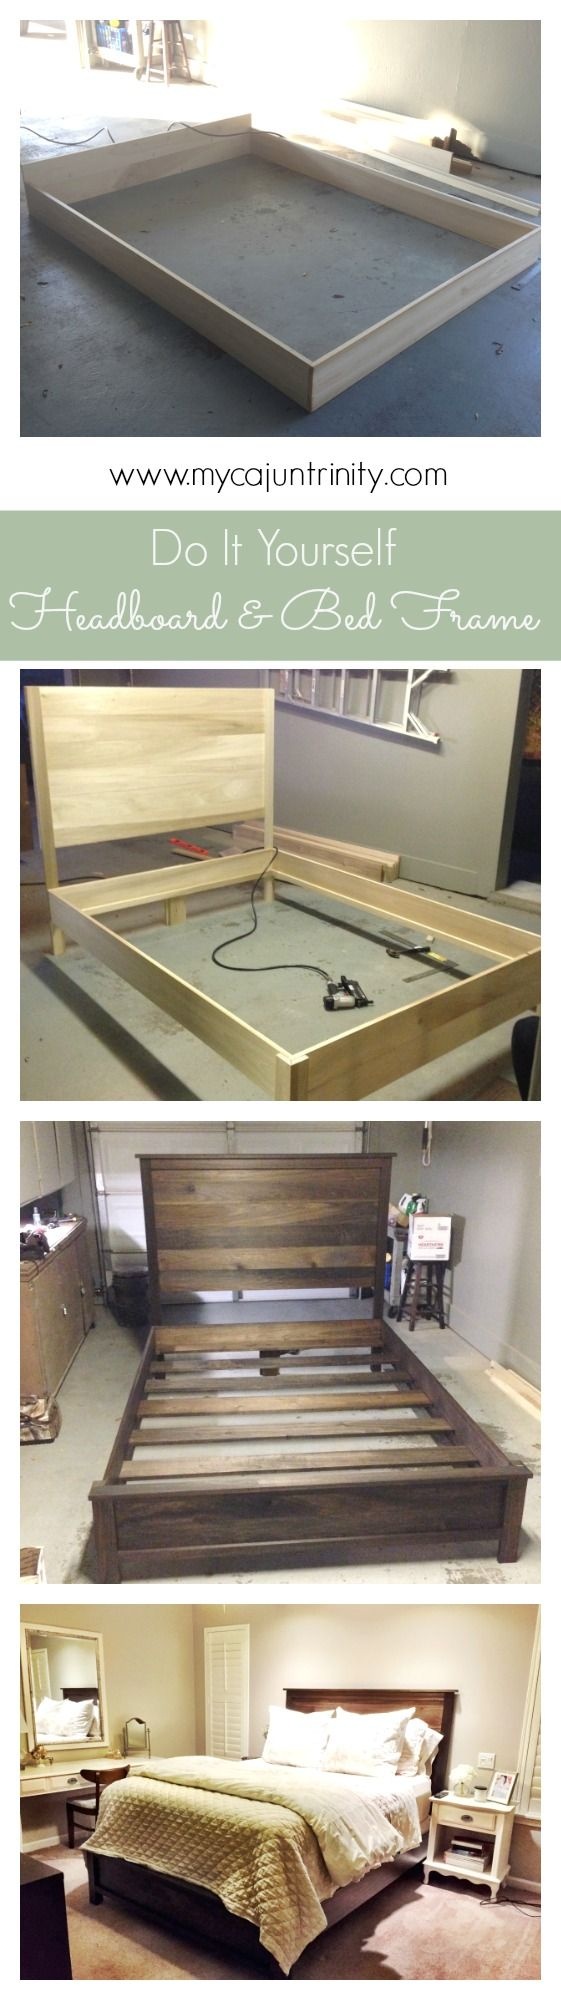 step by step instructions on how to build a headboard and bed frame